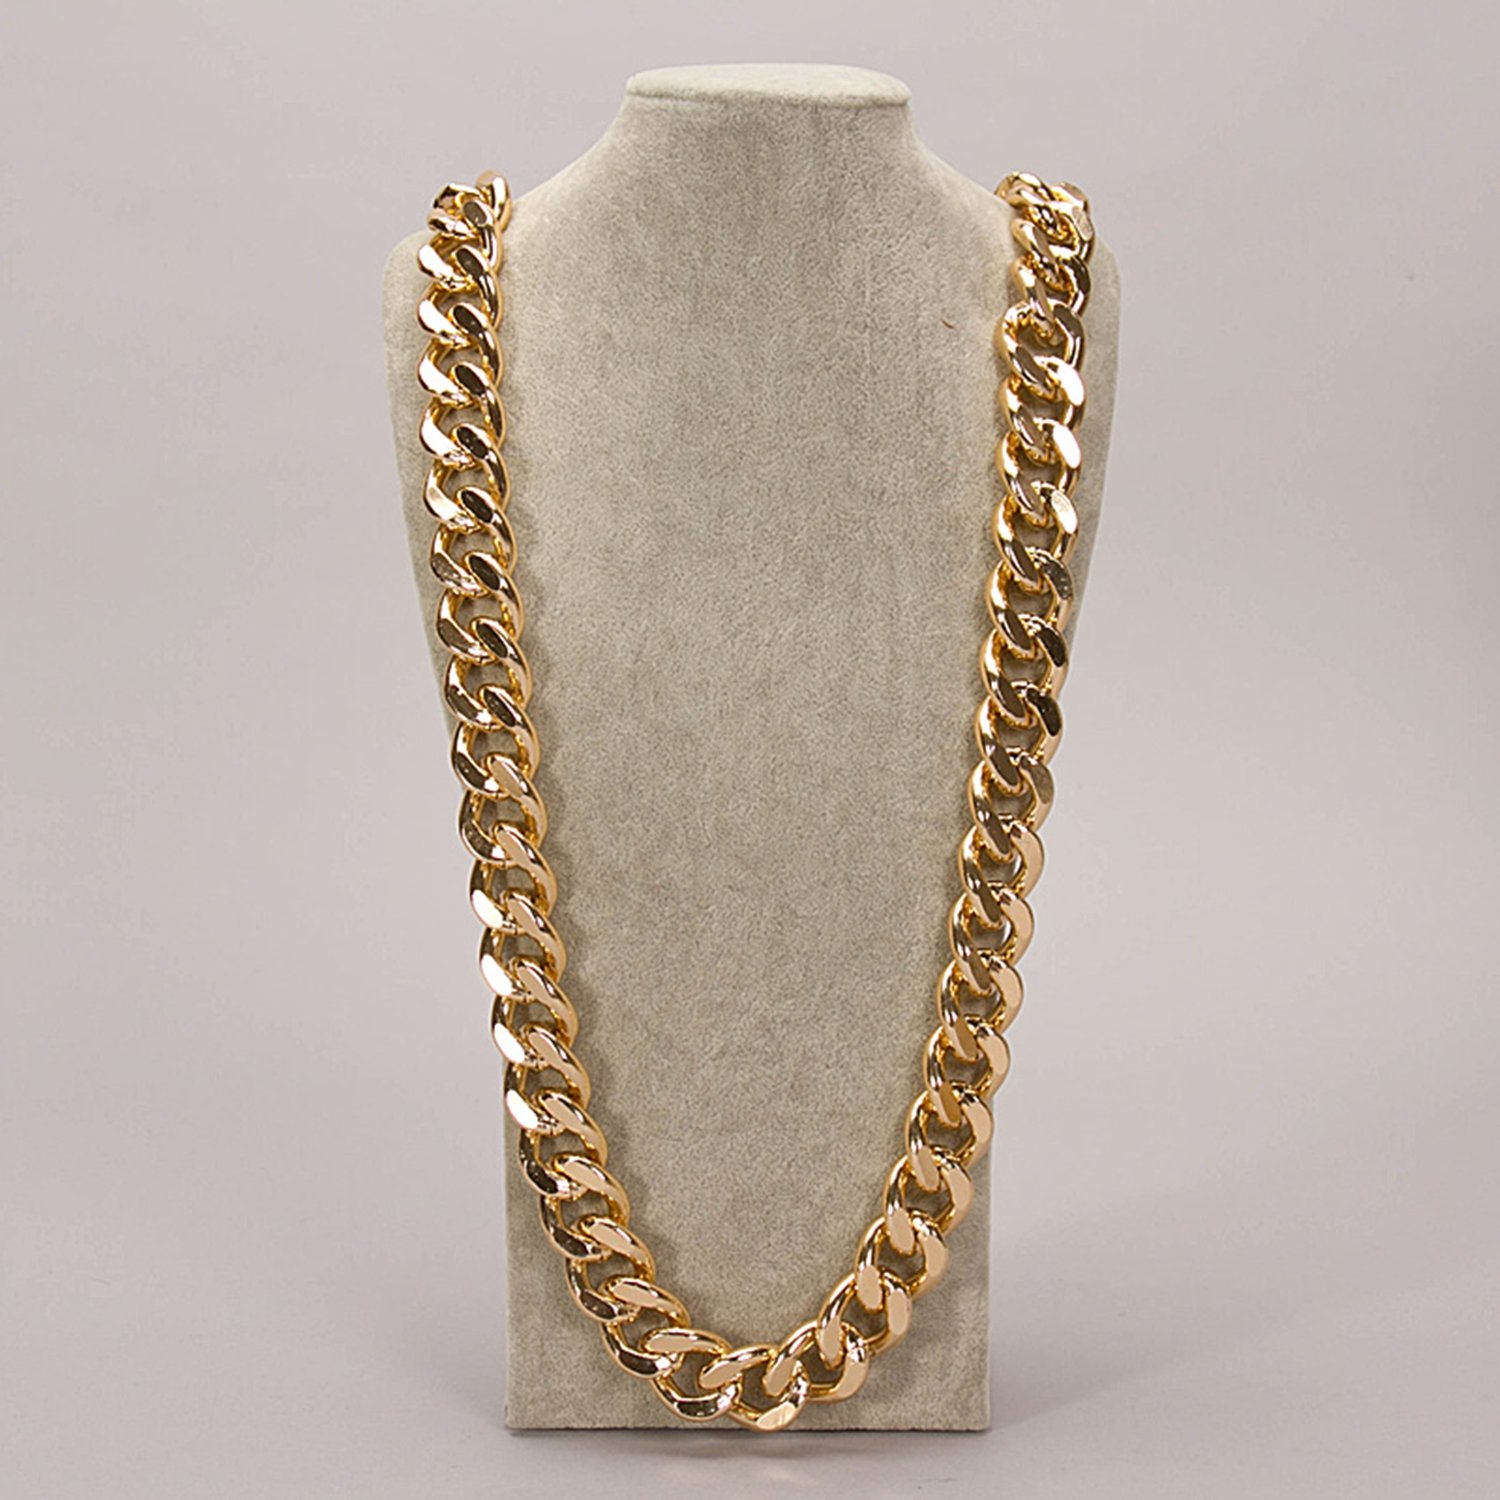 "Celebrity cuban franco Miami chain twisted ICED OUT gold plated 39"" mens necklace 25MM width"